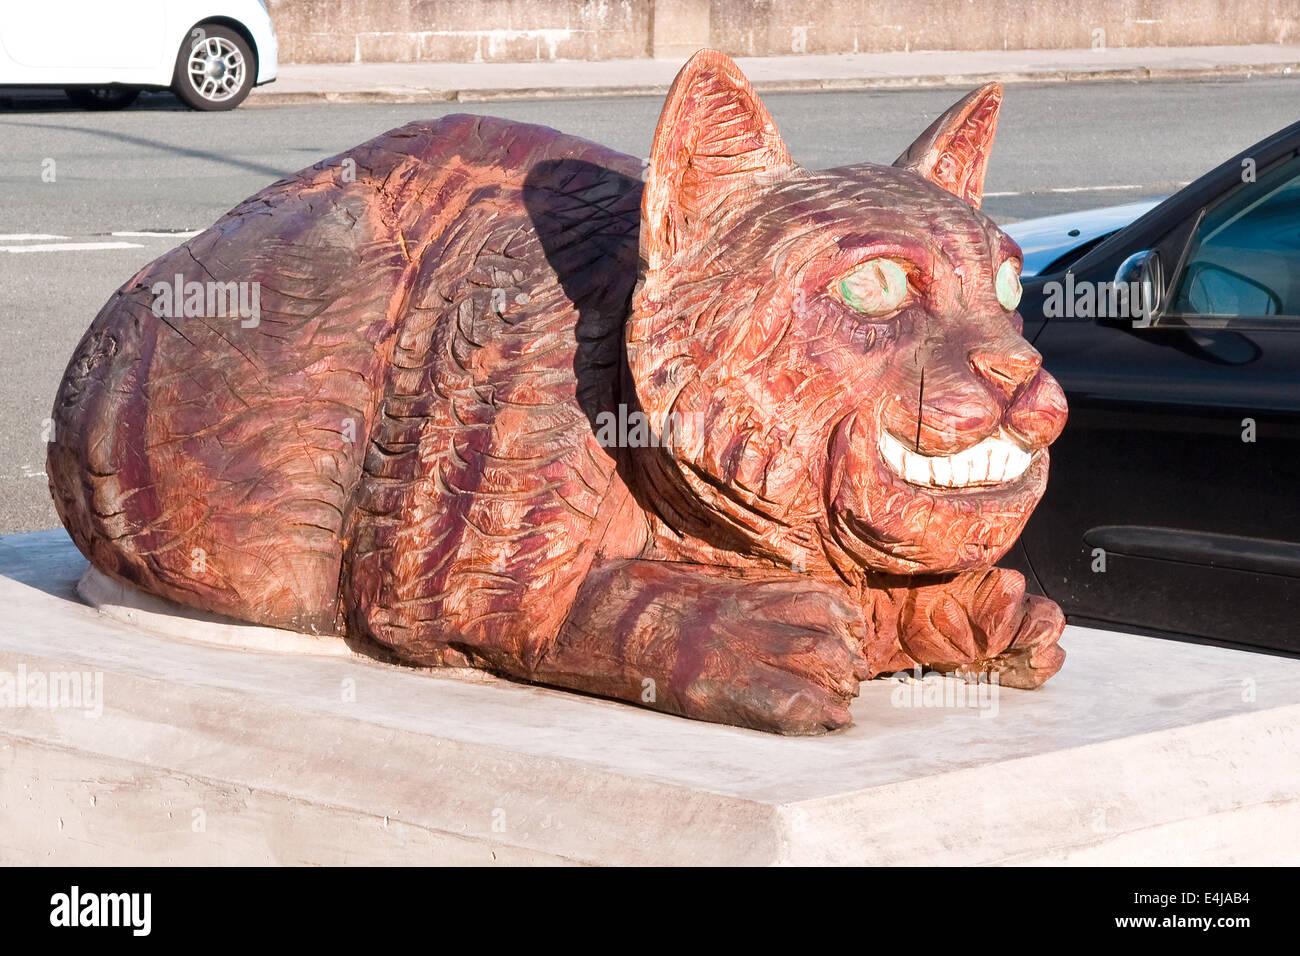 Wooden carving of the Cheshire Cat, one of a series of Lewis Carroll characters displayed in Llandudno, North Wales - Stock Image